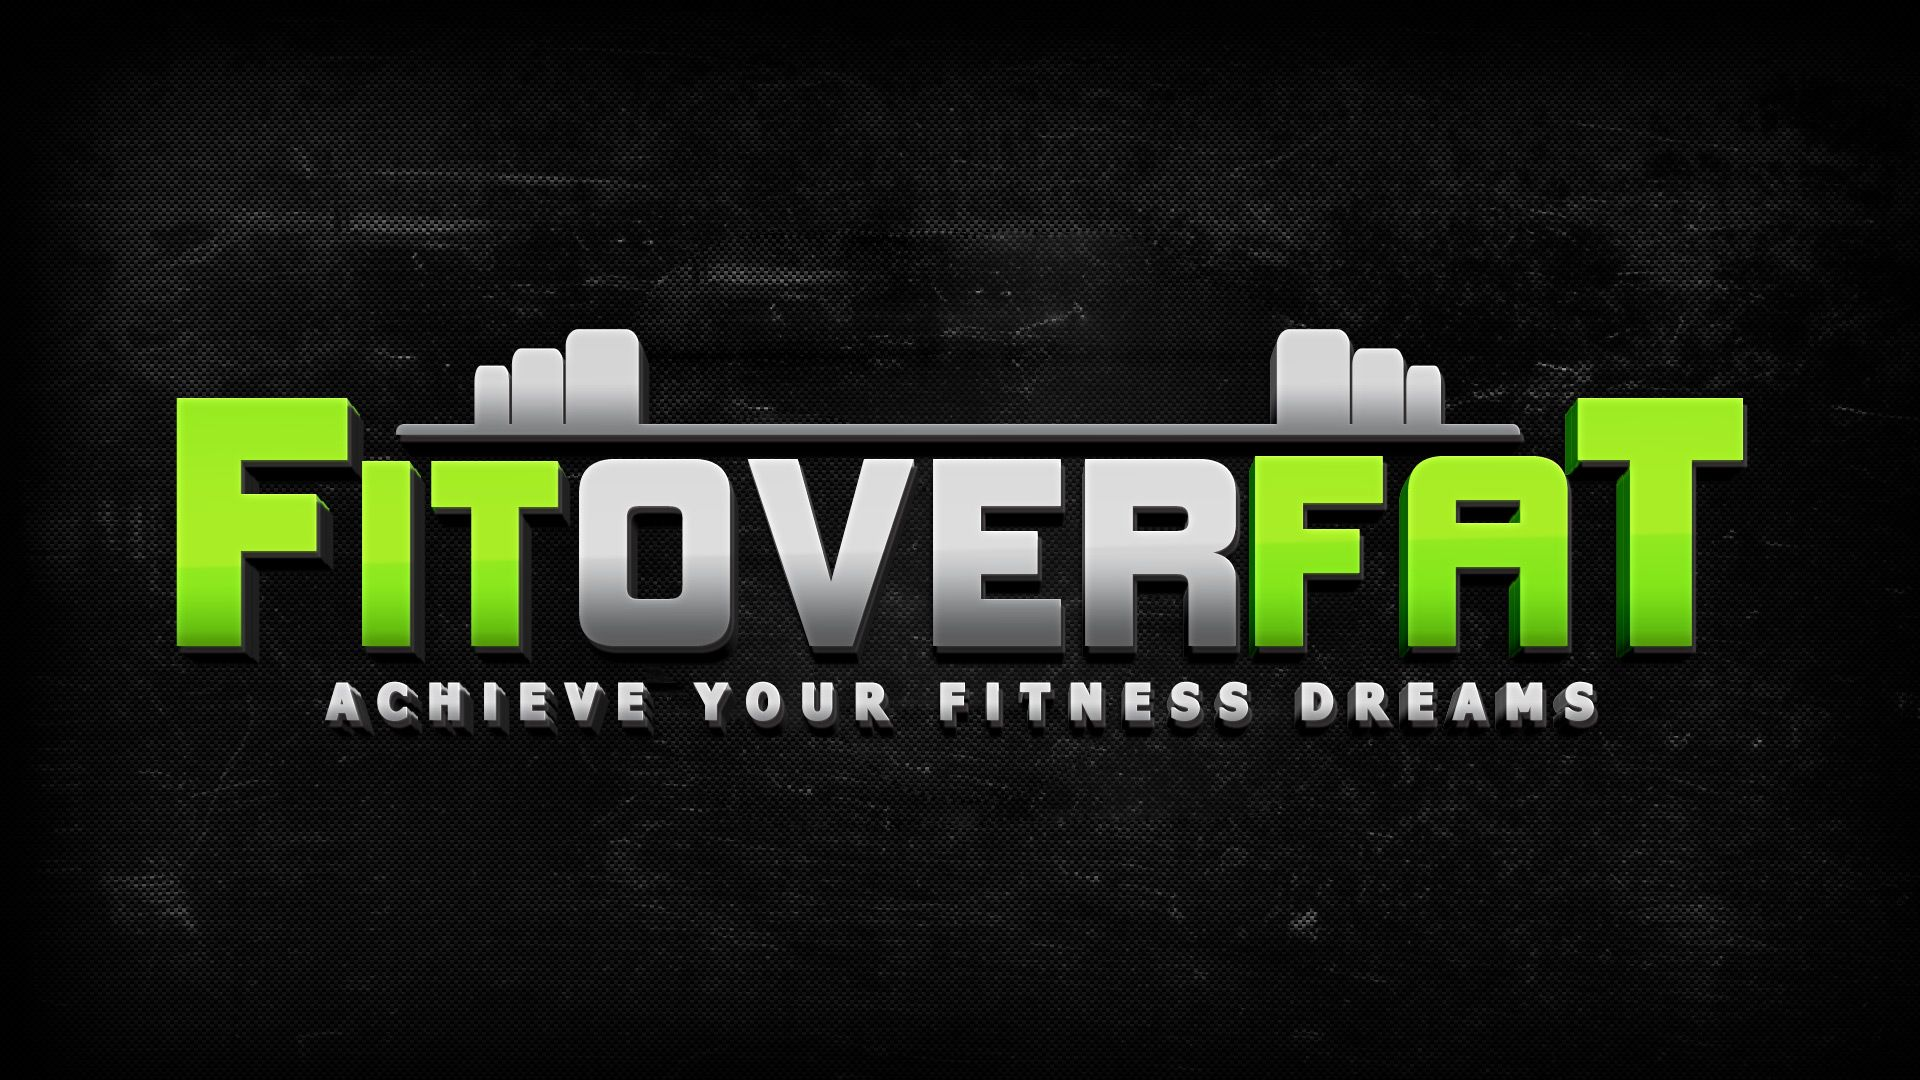 Fitness Motivational Wallpapers | ... FitOverFat by ...